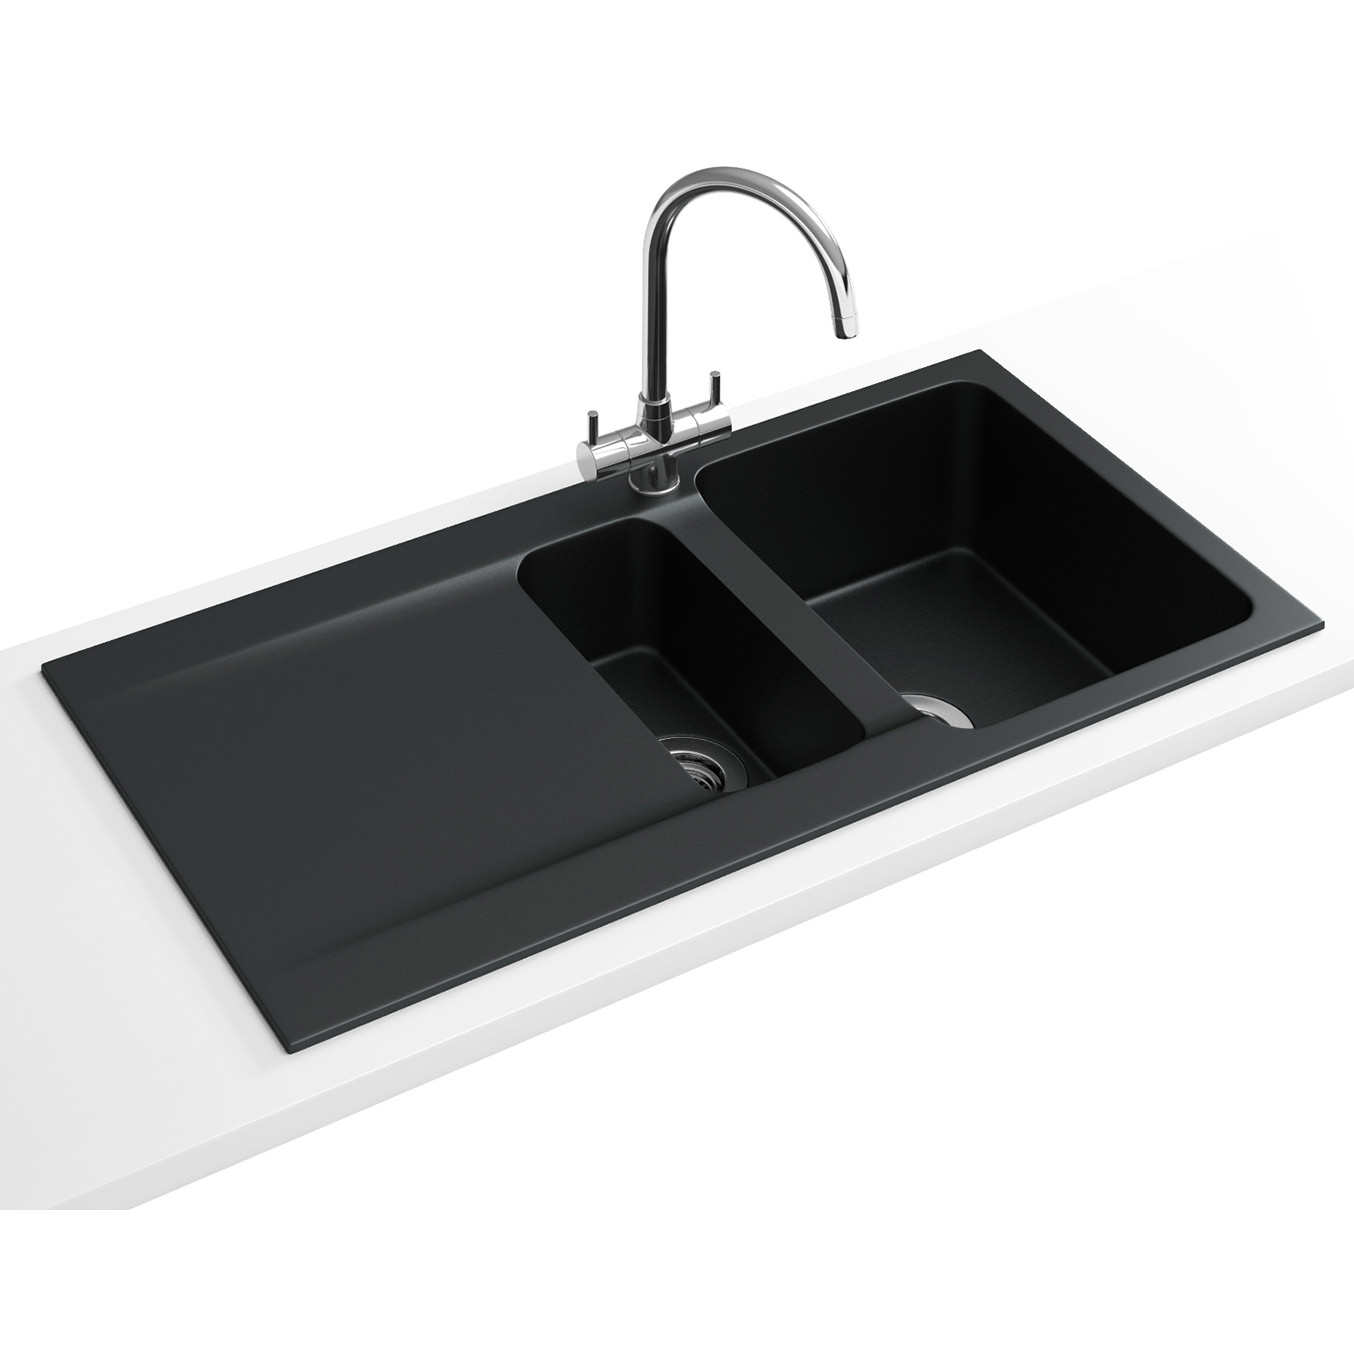 Franke Orion OID 651 Tectonite Carbon Black 1.5 Bowl Inset Sink 114 ...